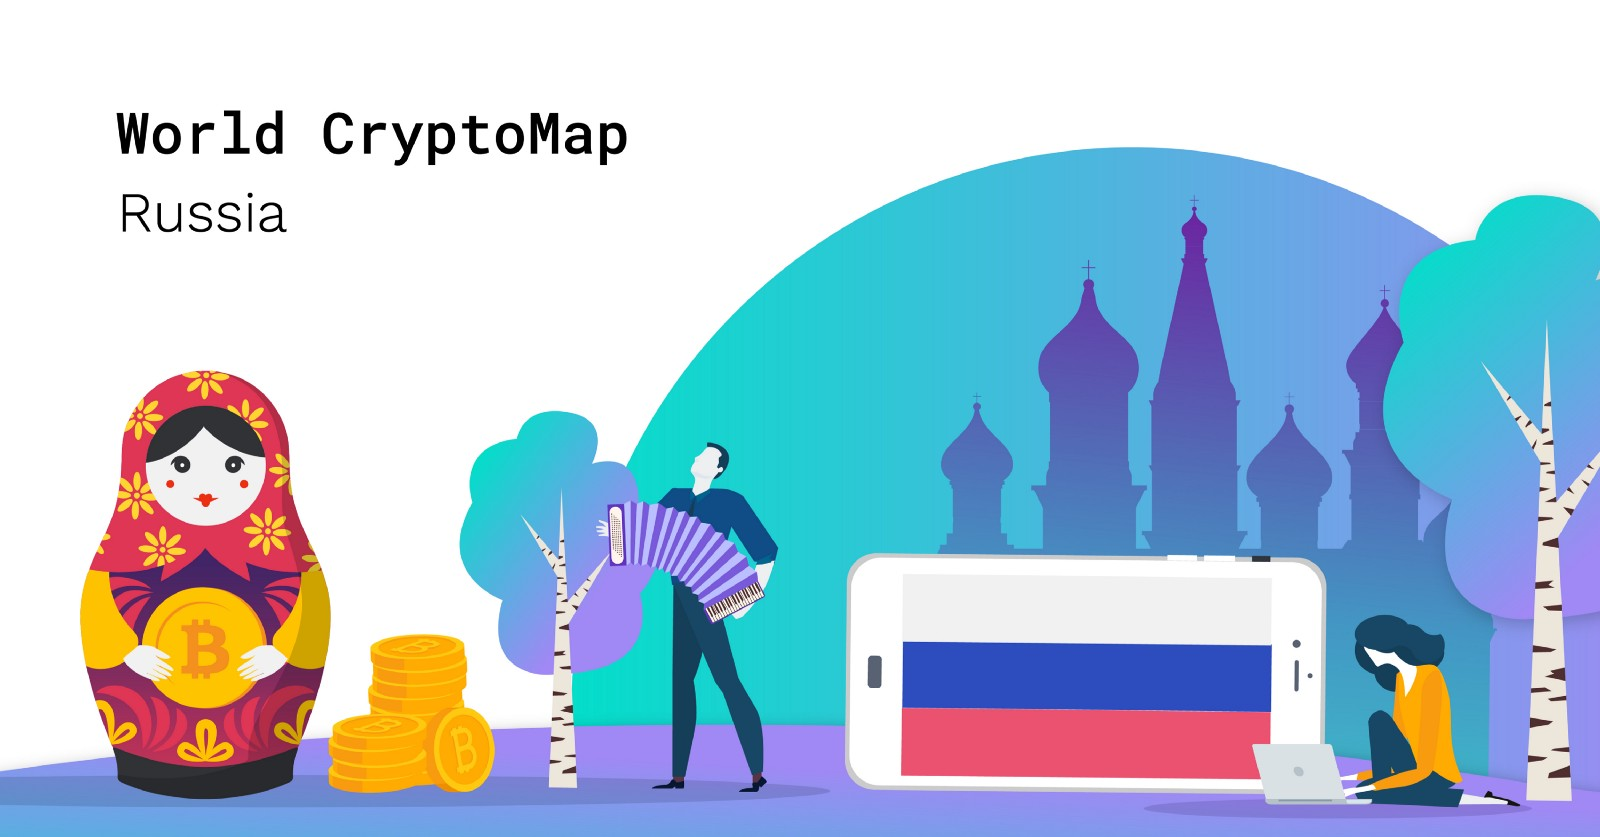 /slow-regulation-vs-growing-innovation-russias-unbalanced-crypto-industry-70ecce00ccc3 feature image